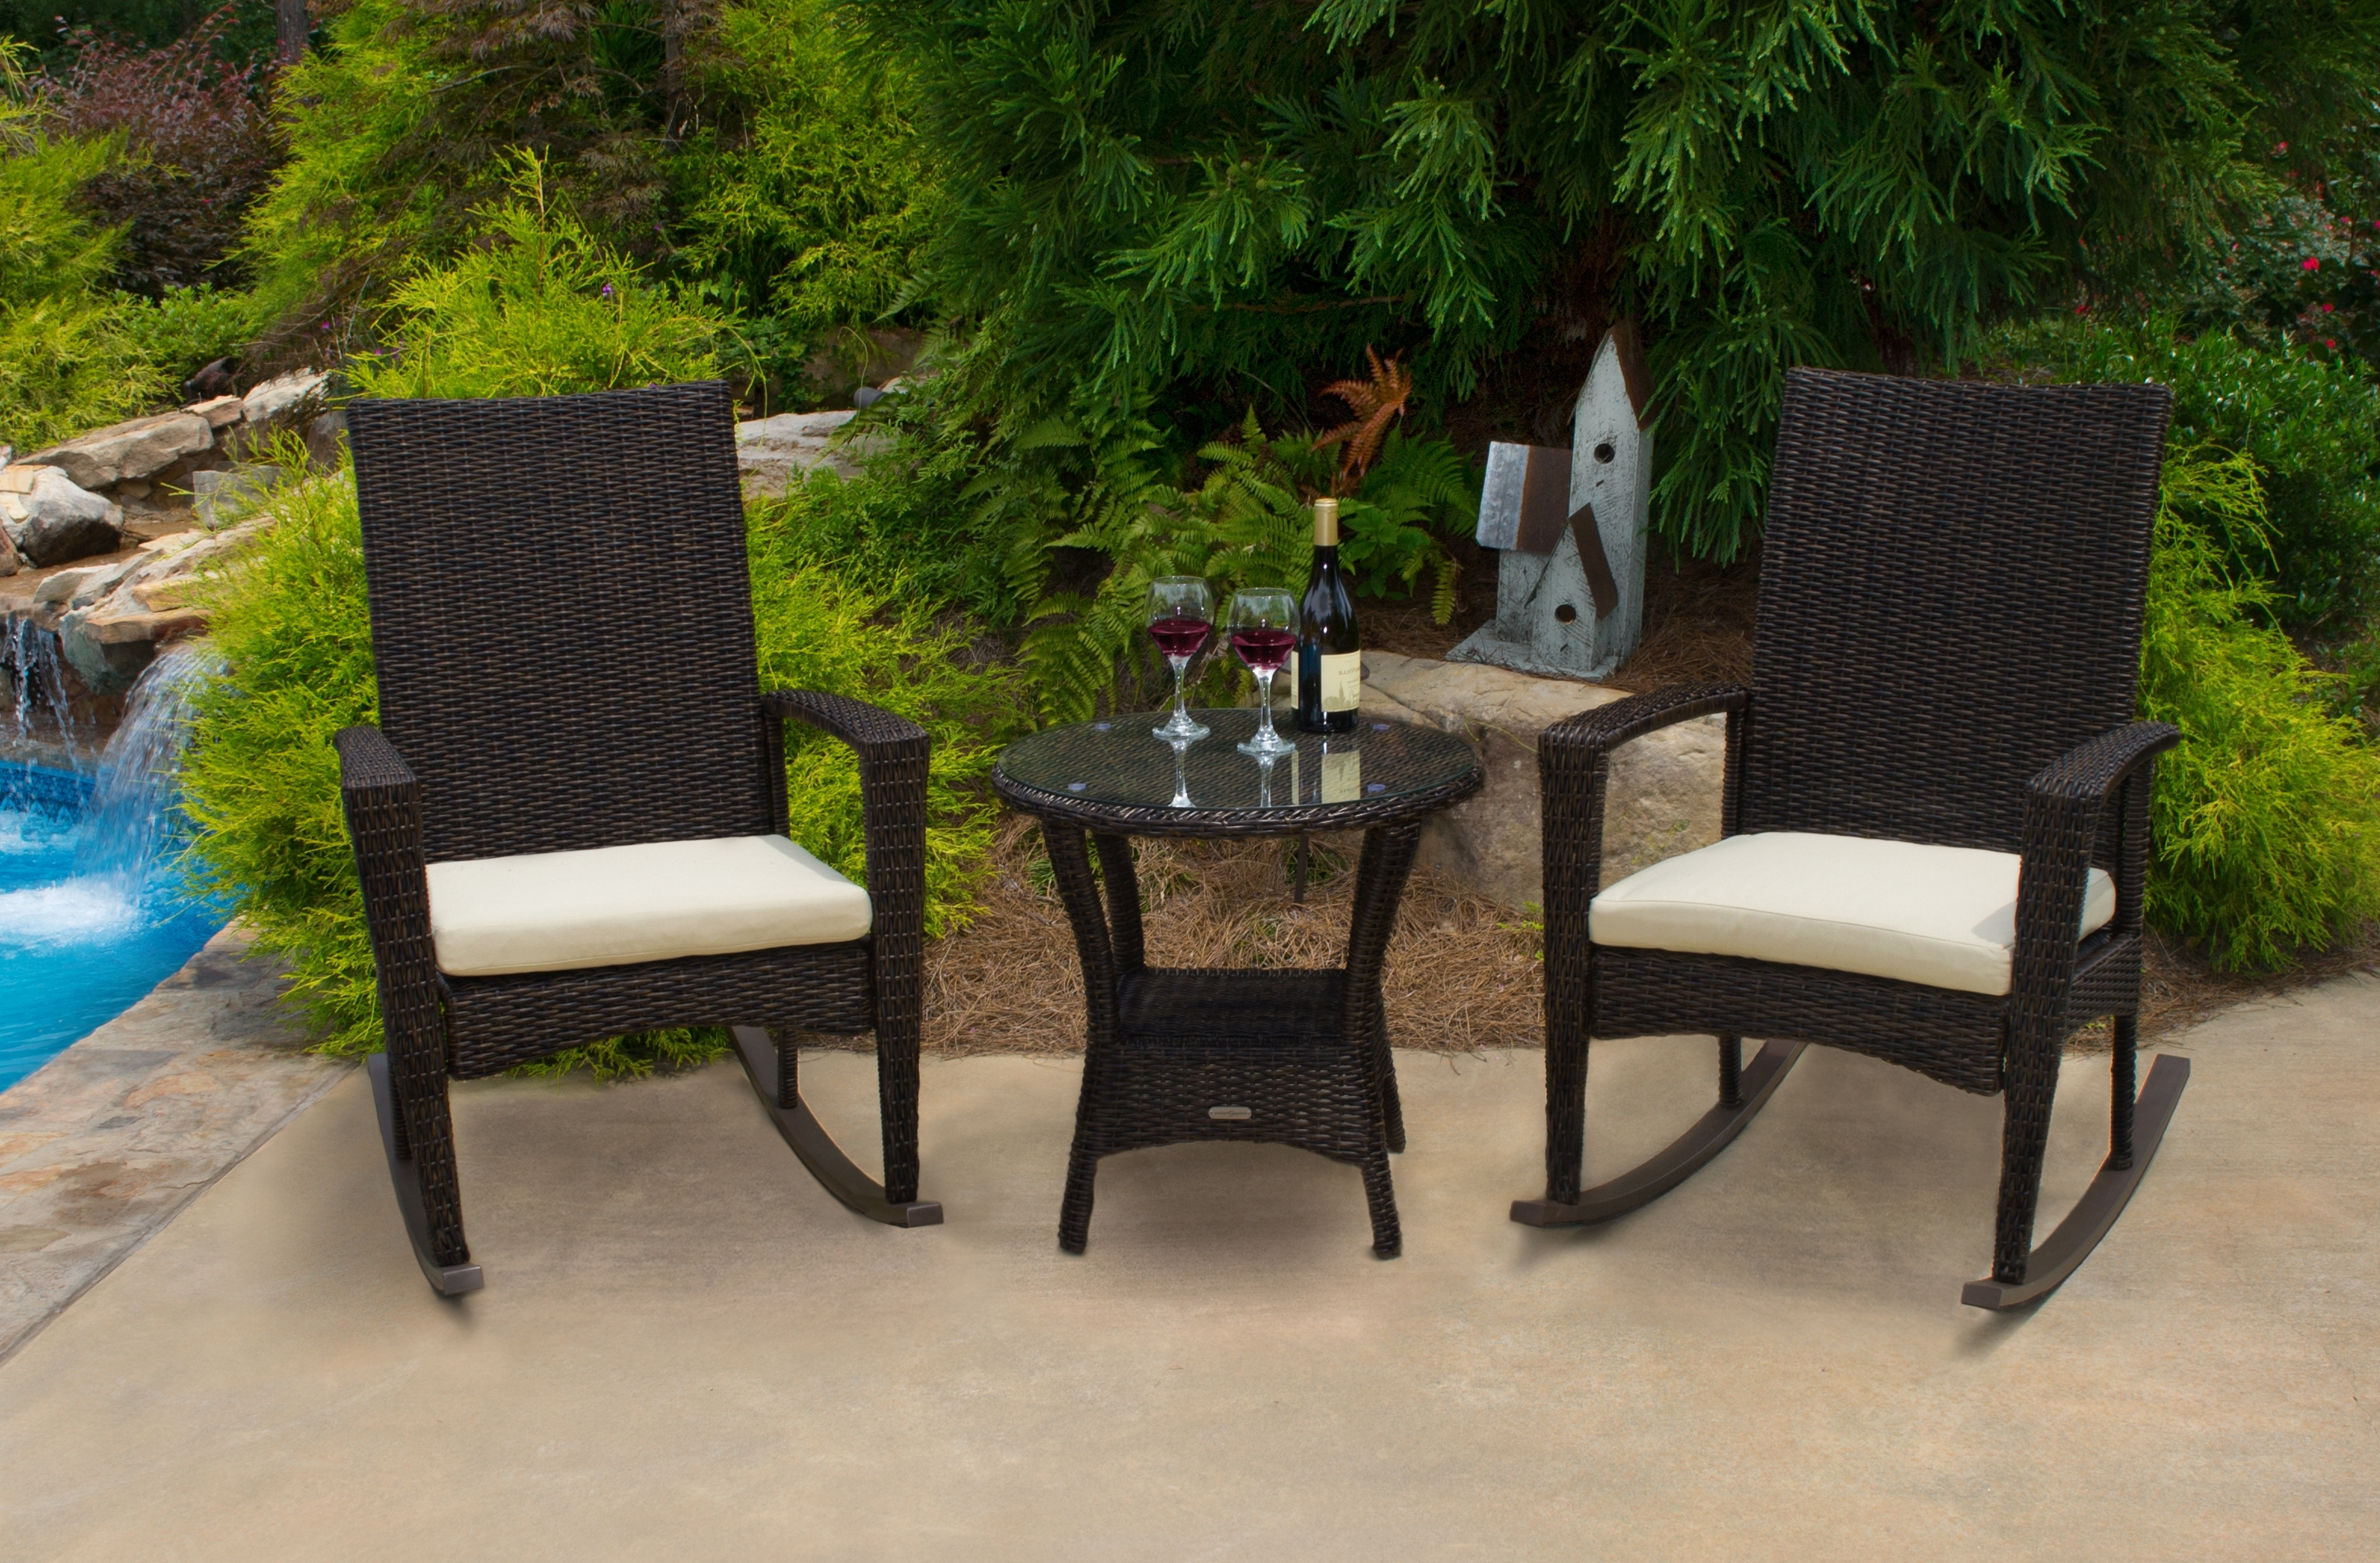 Wicker Rocking Chairs Sets In Most Recent Rocking Chairs – Tortuga Outdoor Of Georgia – Alpharetta (View 17 of 20)